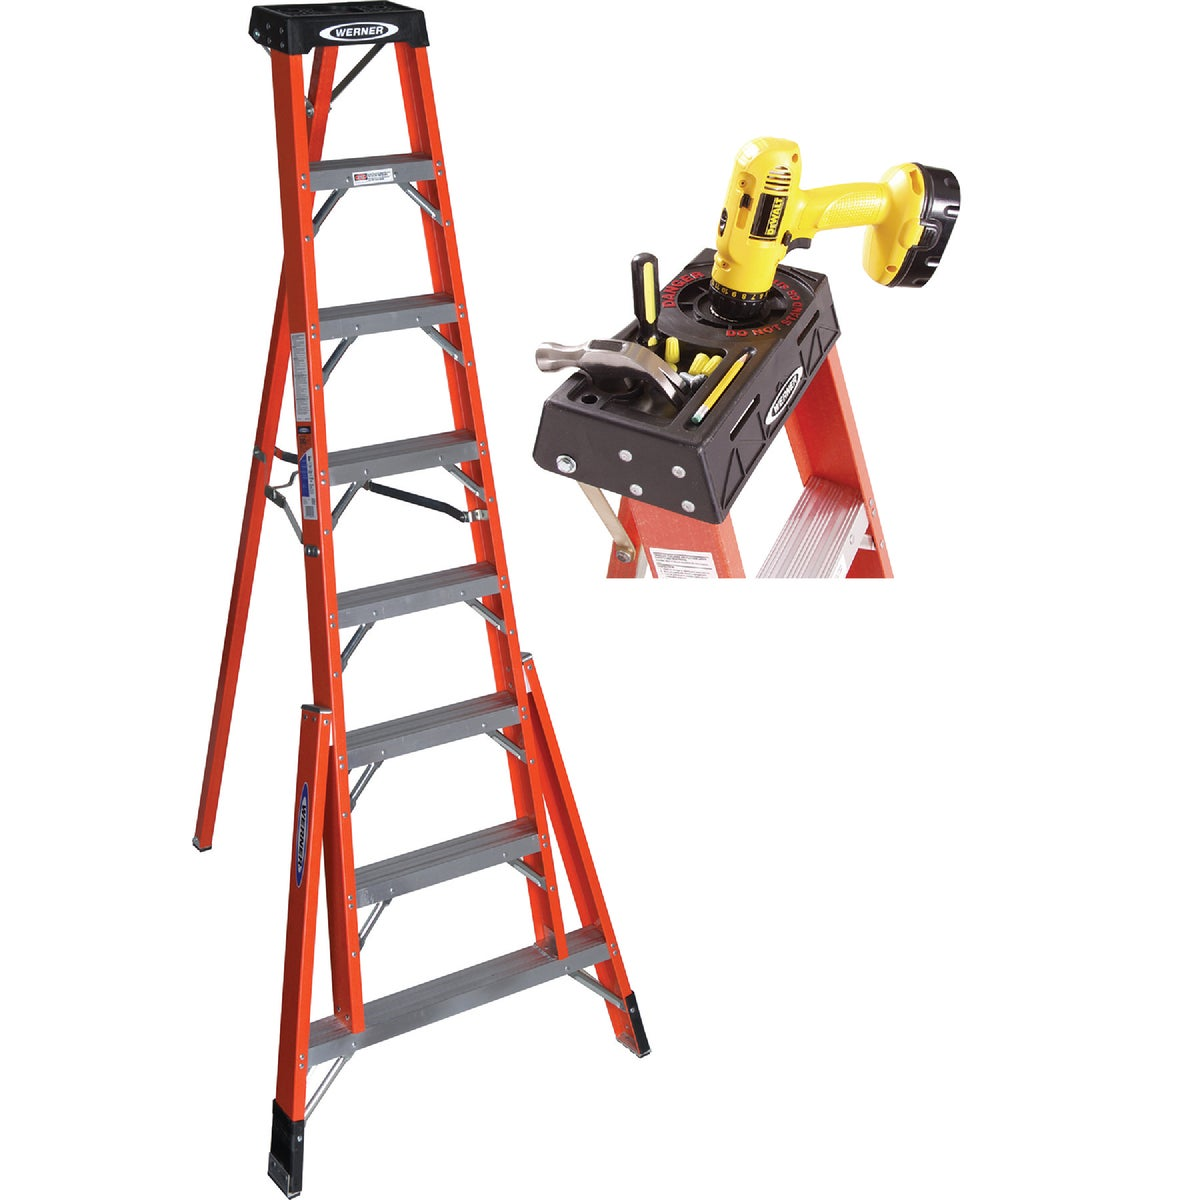 8' FBGL TRIPOD LADDER - FTP6208 by Werner Ladder